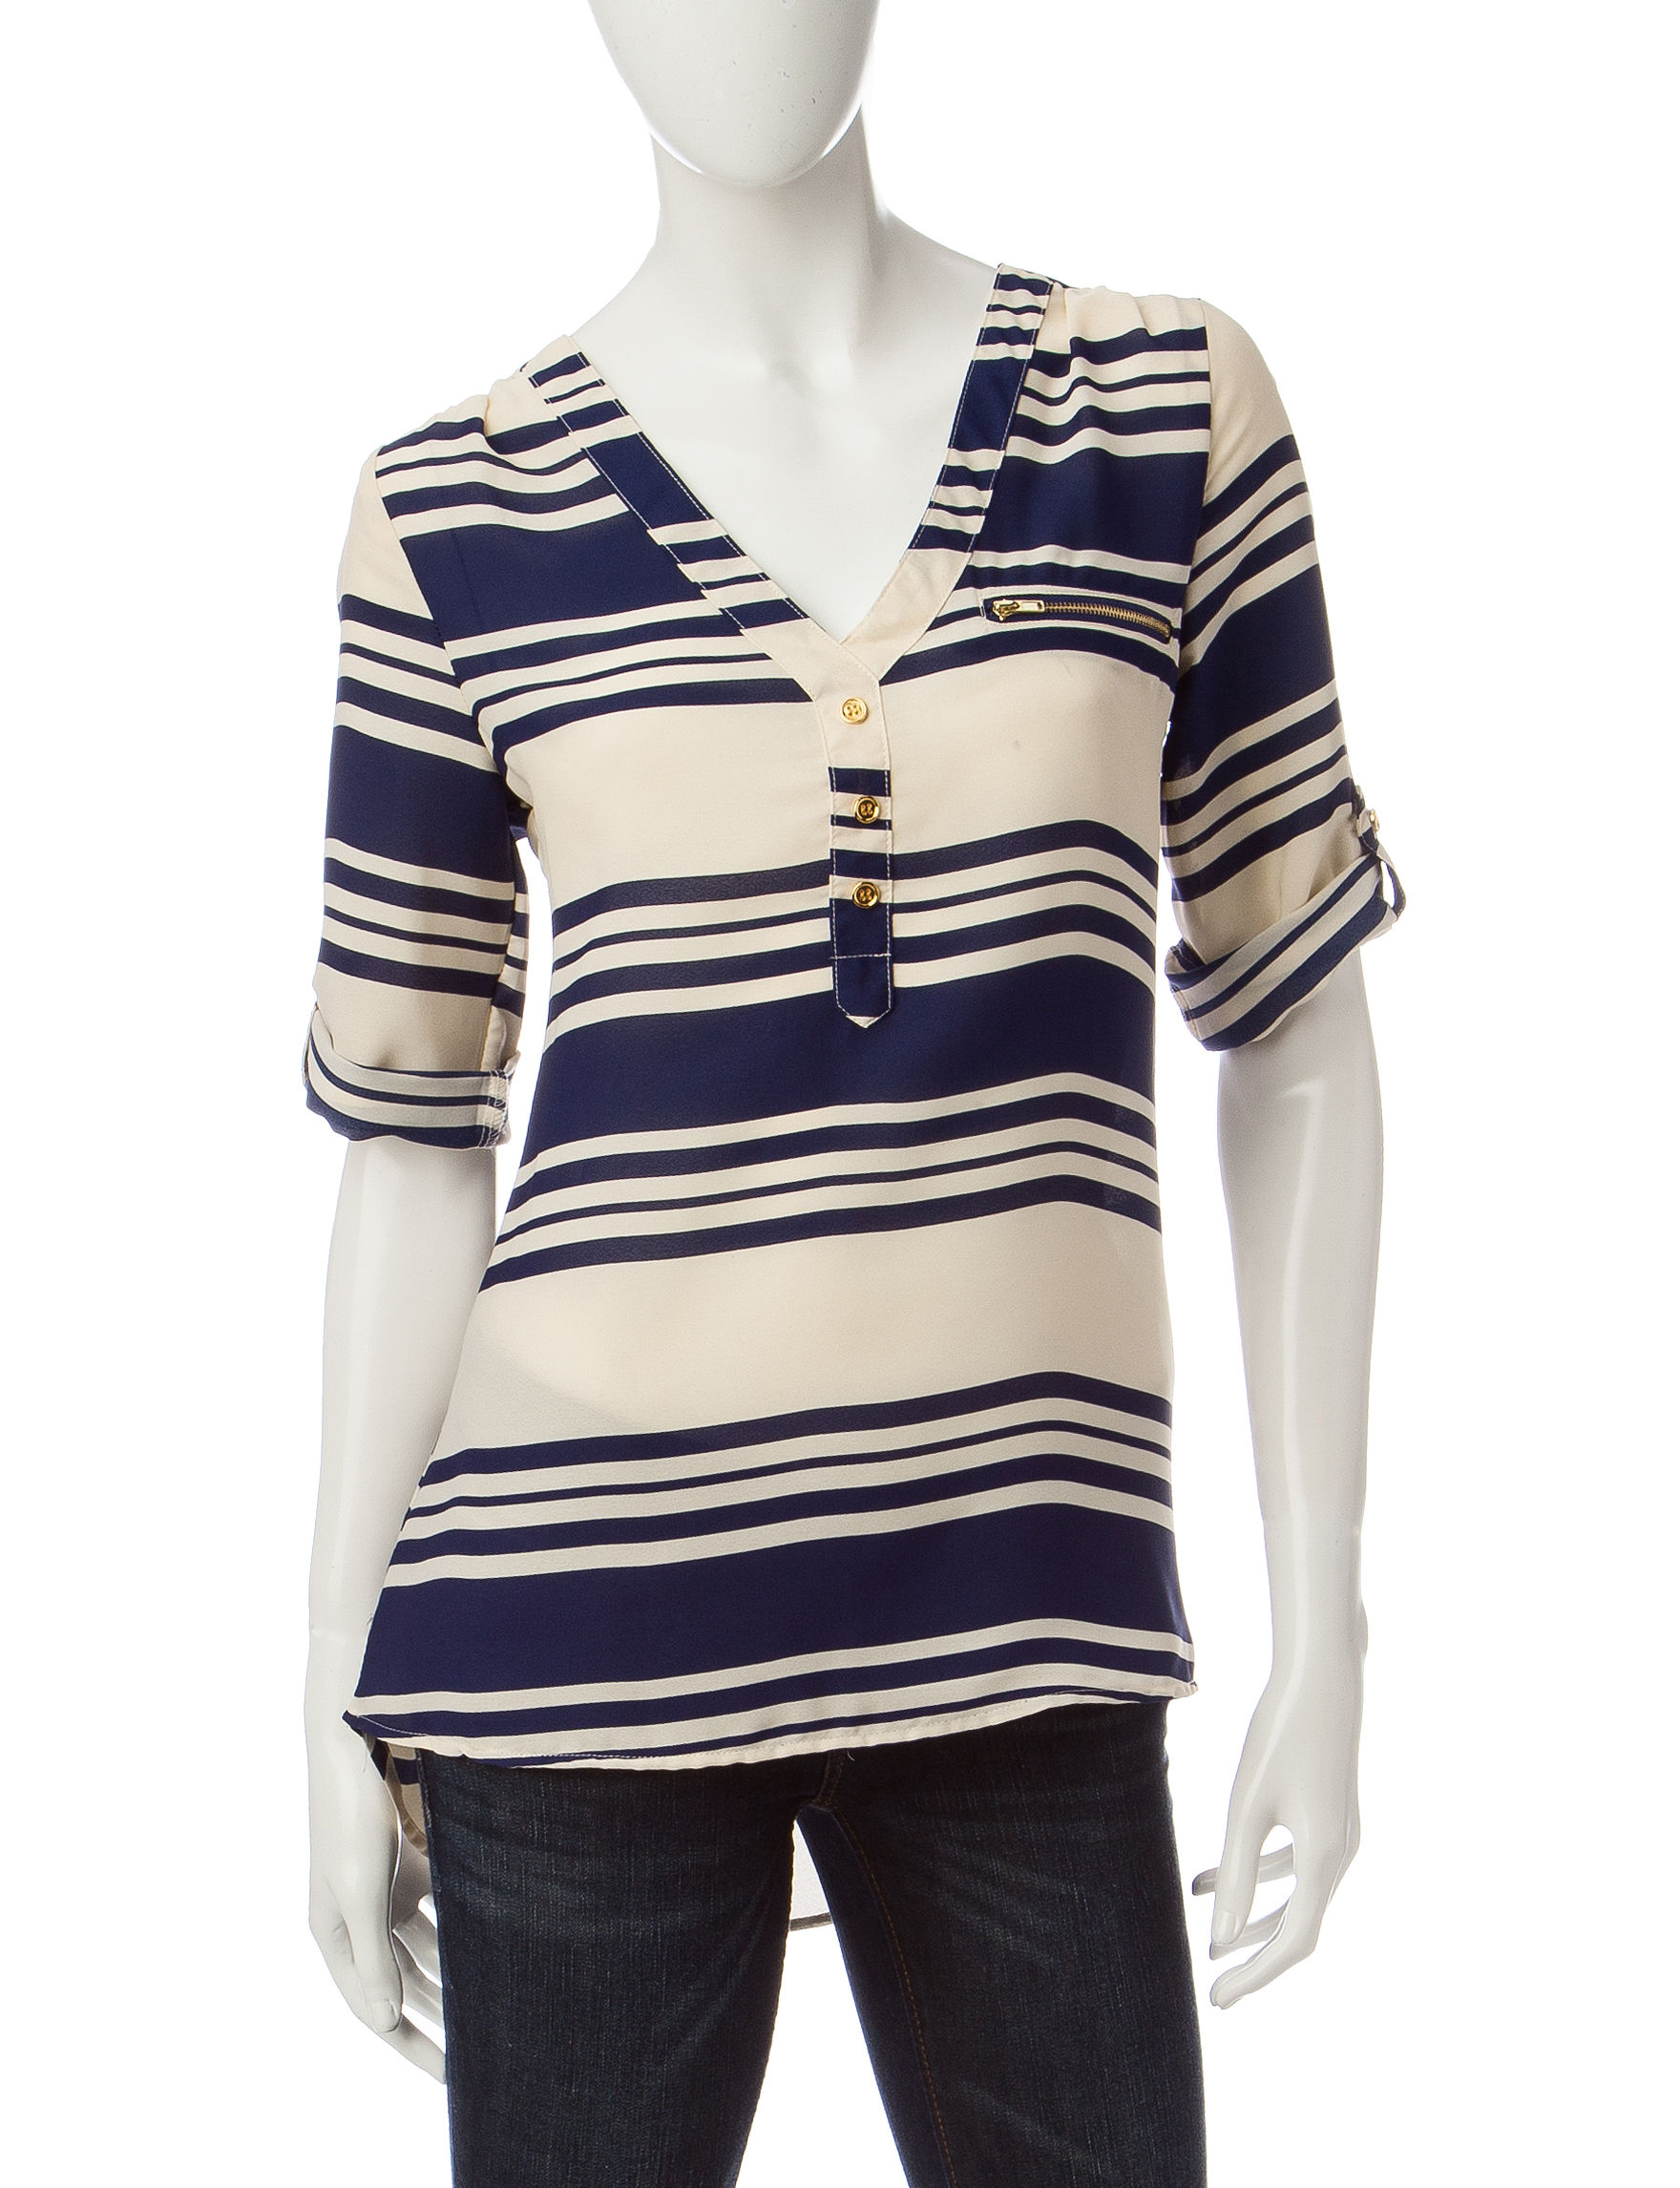 Wishful Park Navy Stripe Pull-overs